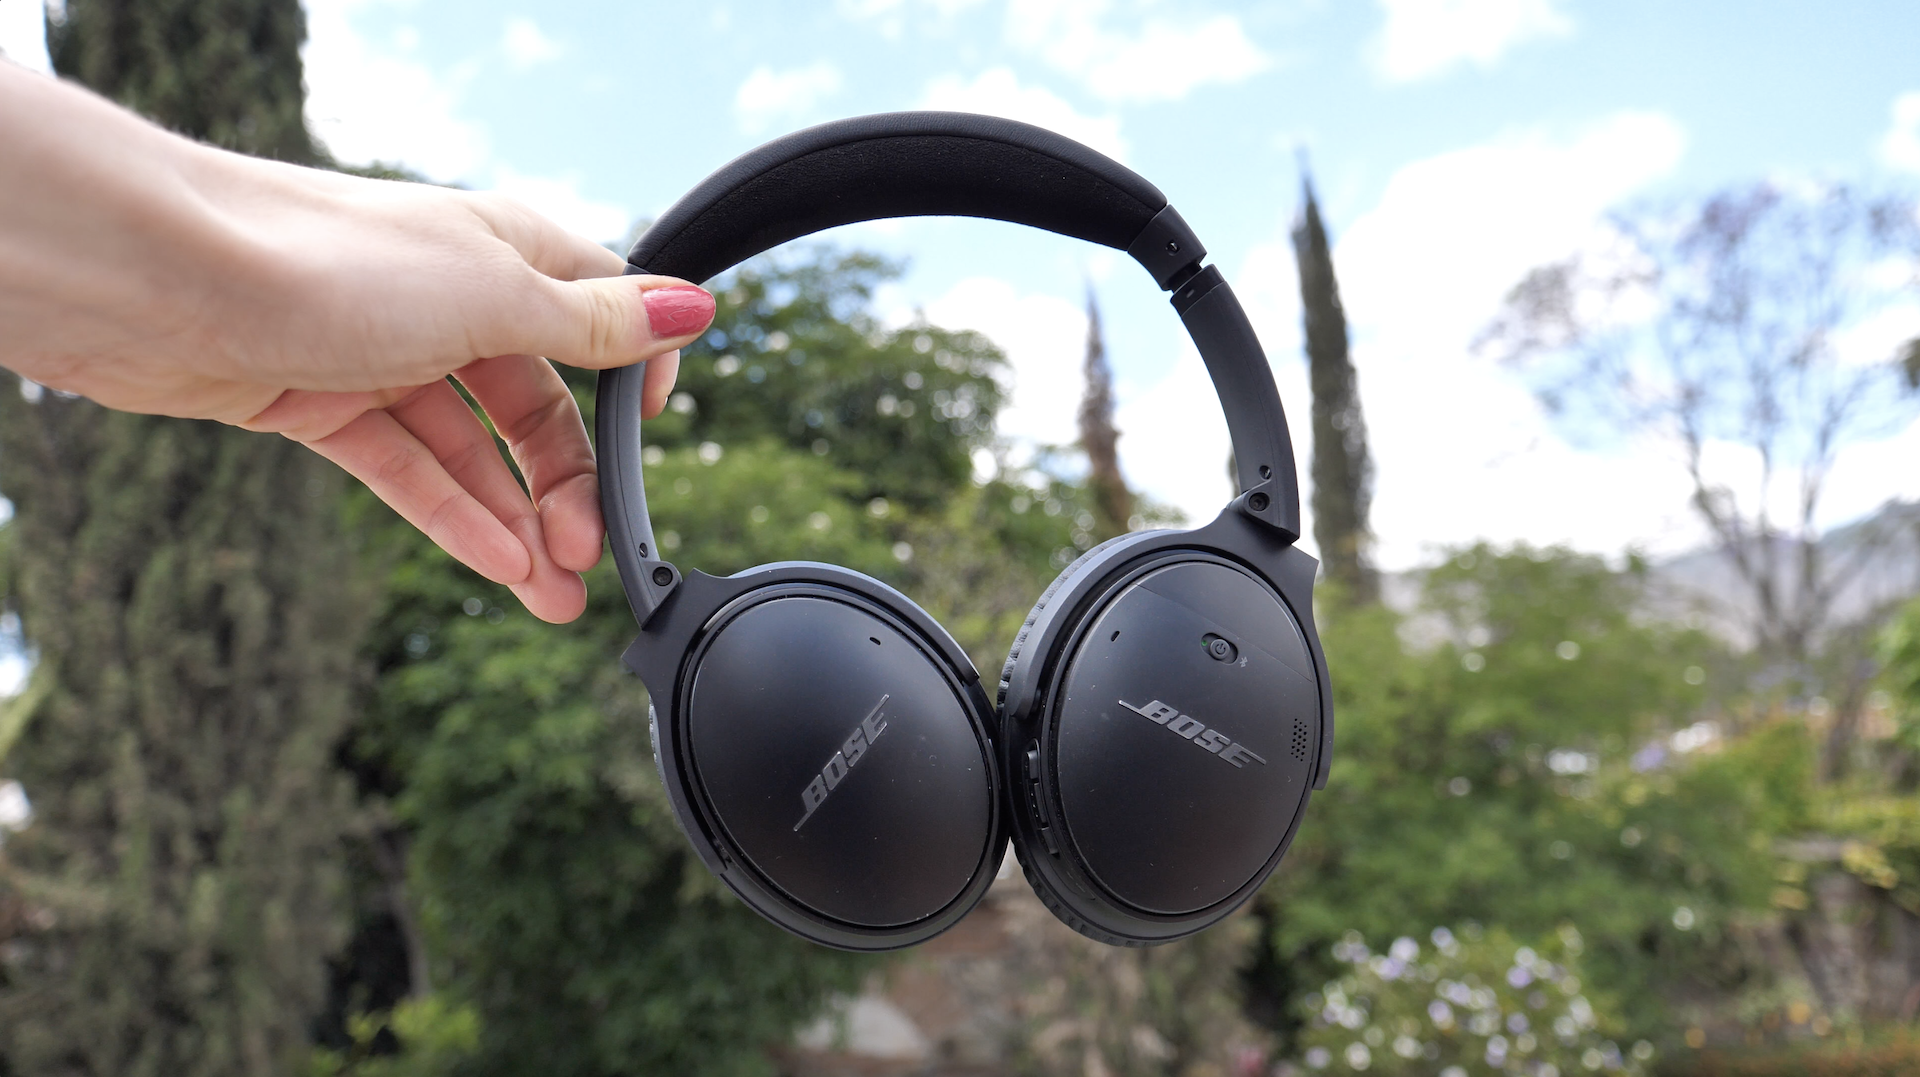 My beloved Bose headphones that I have been traveling with since 2017